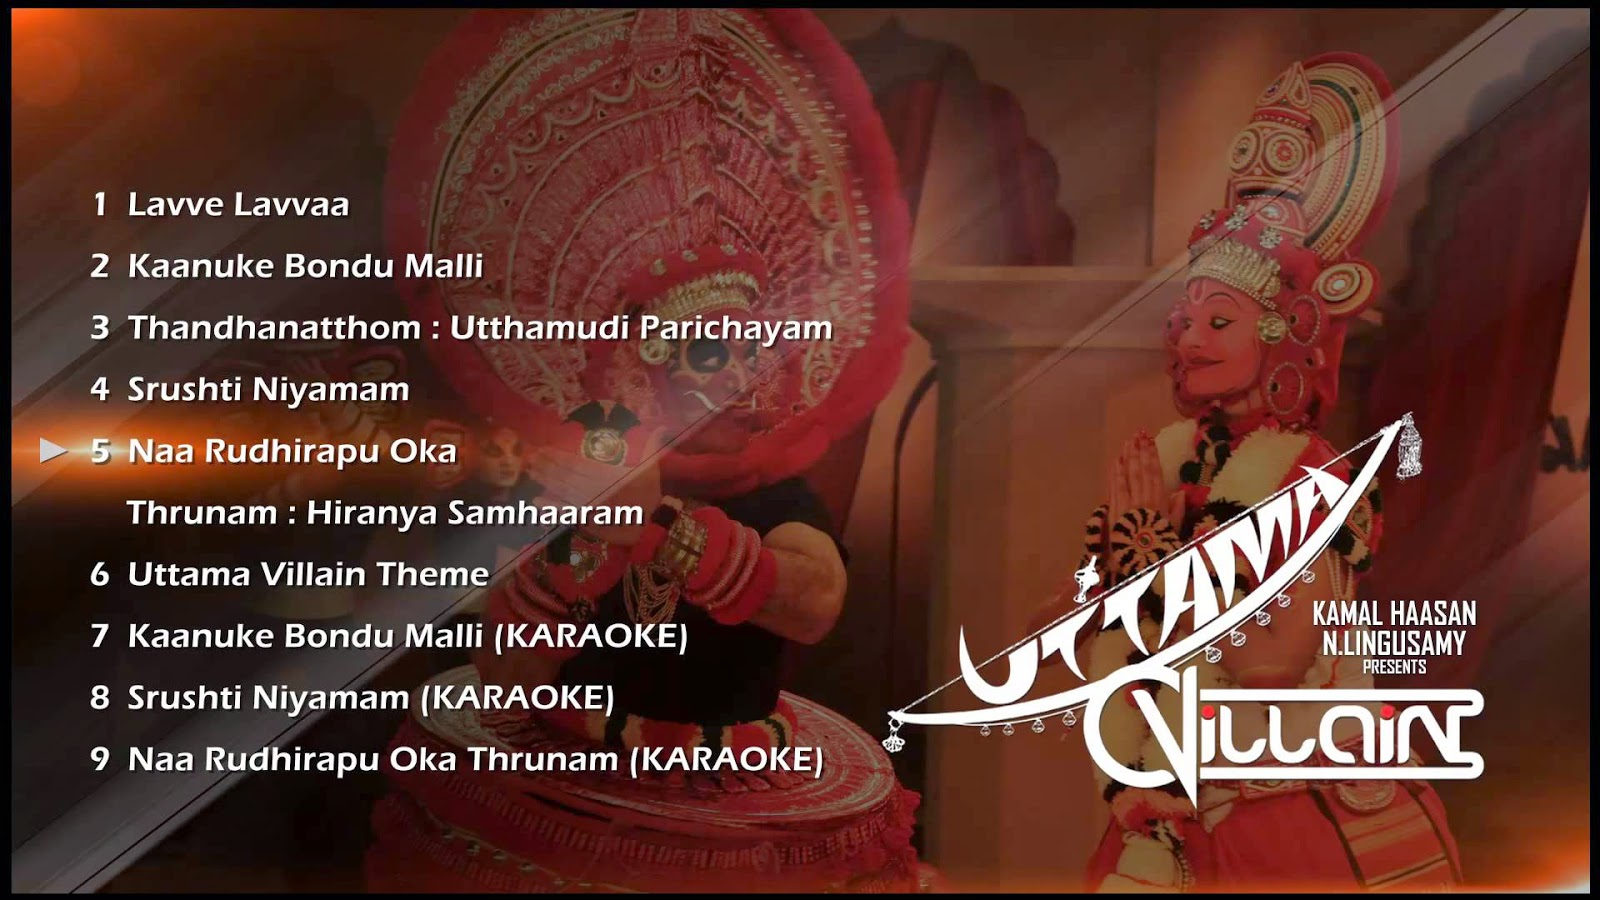 Uttama Villain Telugu Movie Full Audio Songs (Jukebox) | Kamal Haasan, Ghibran